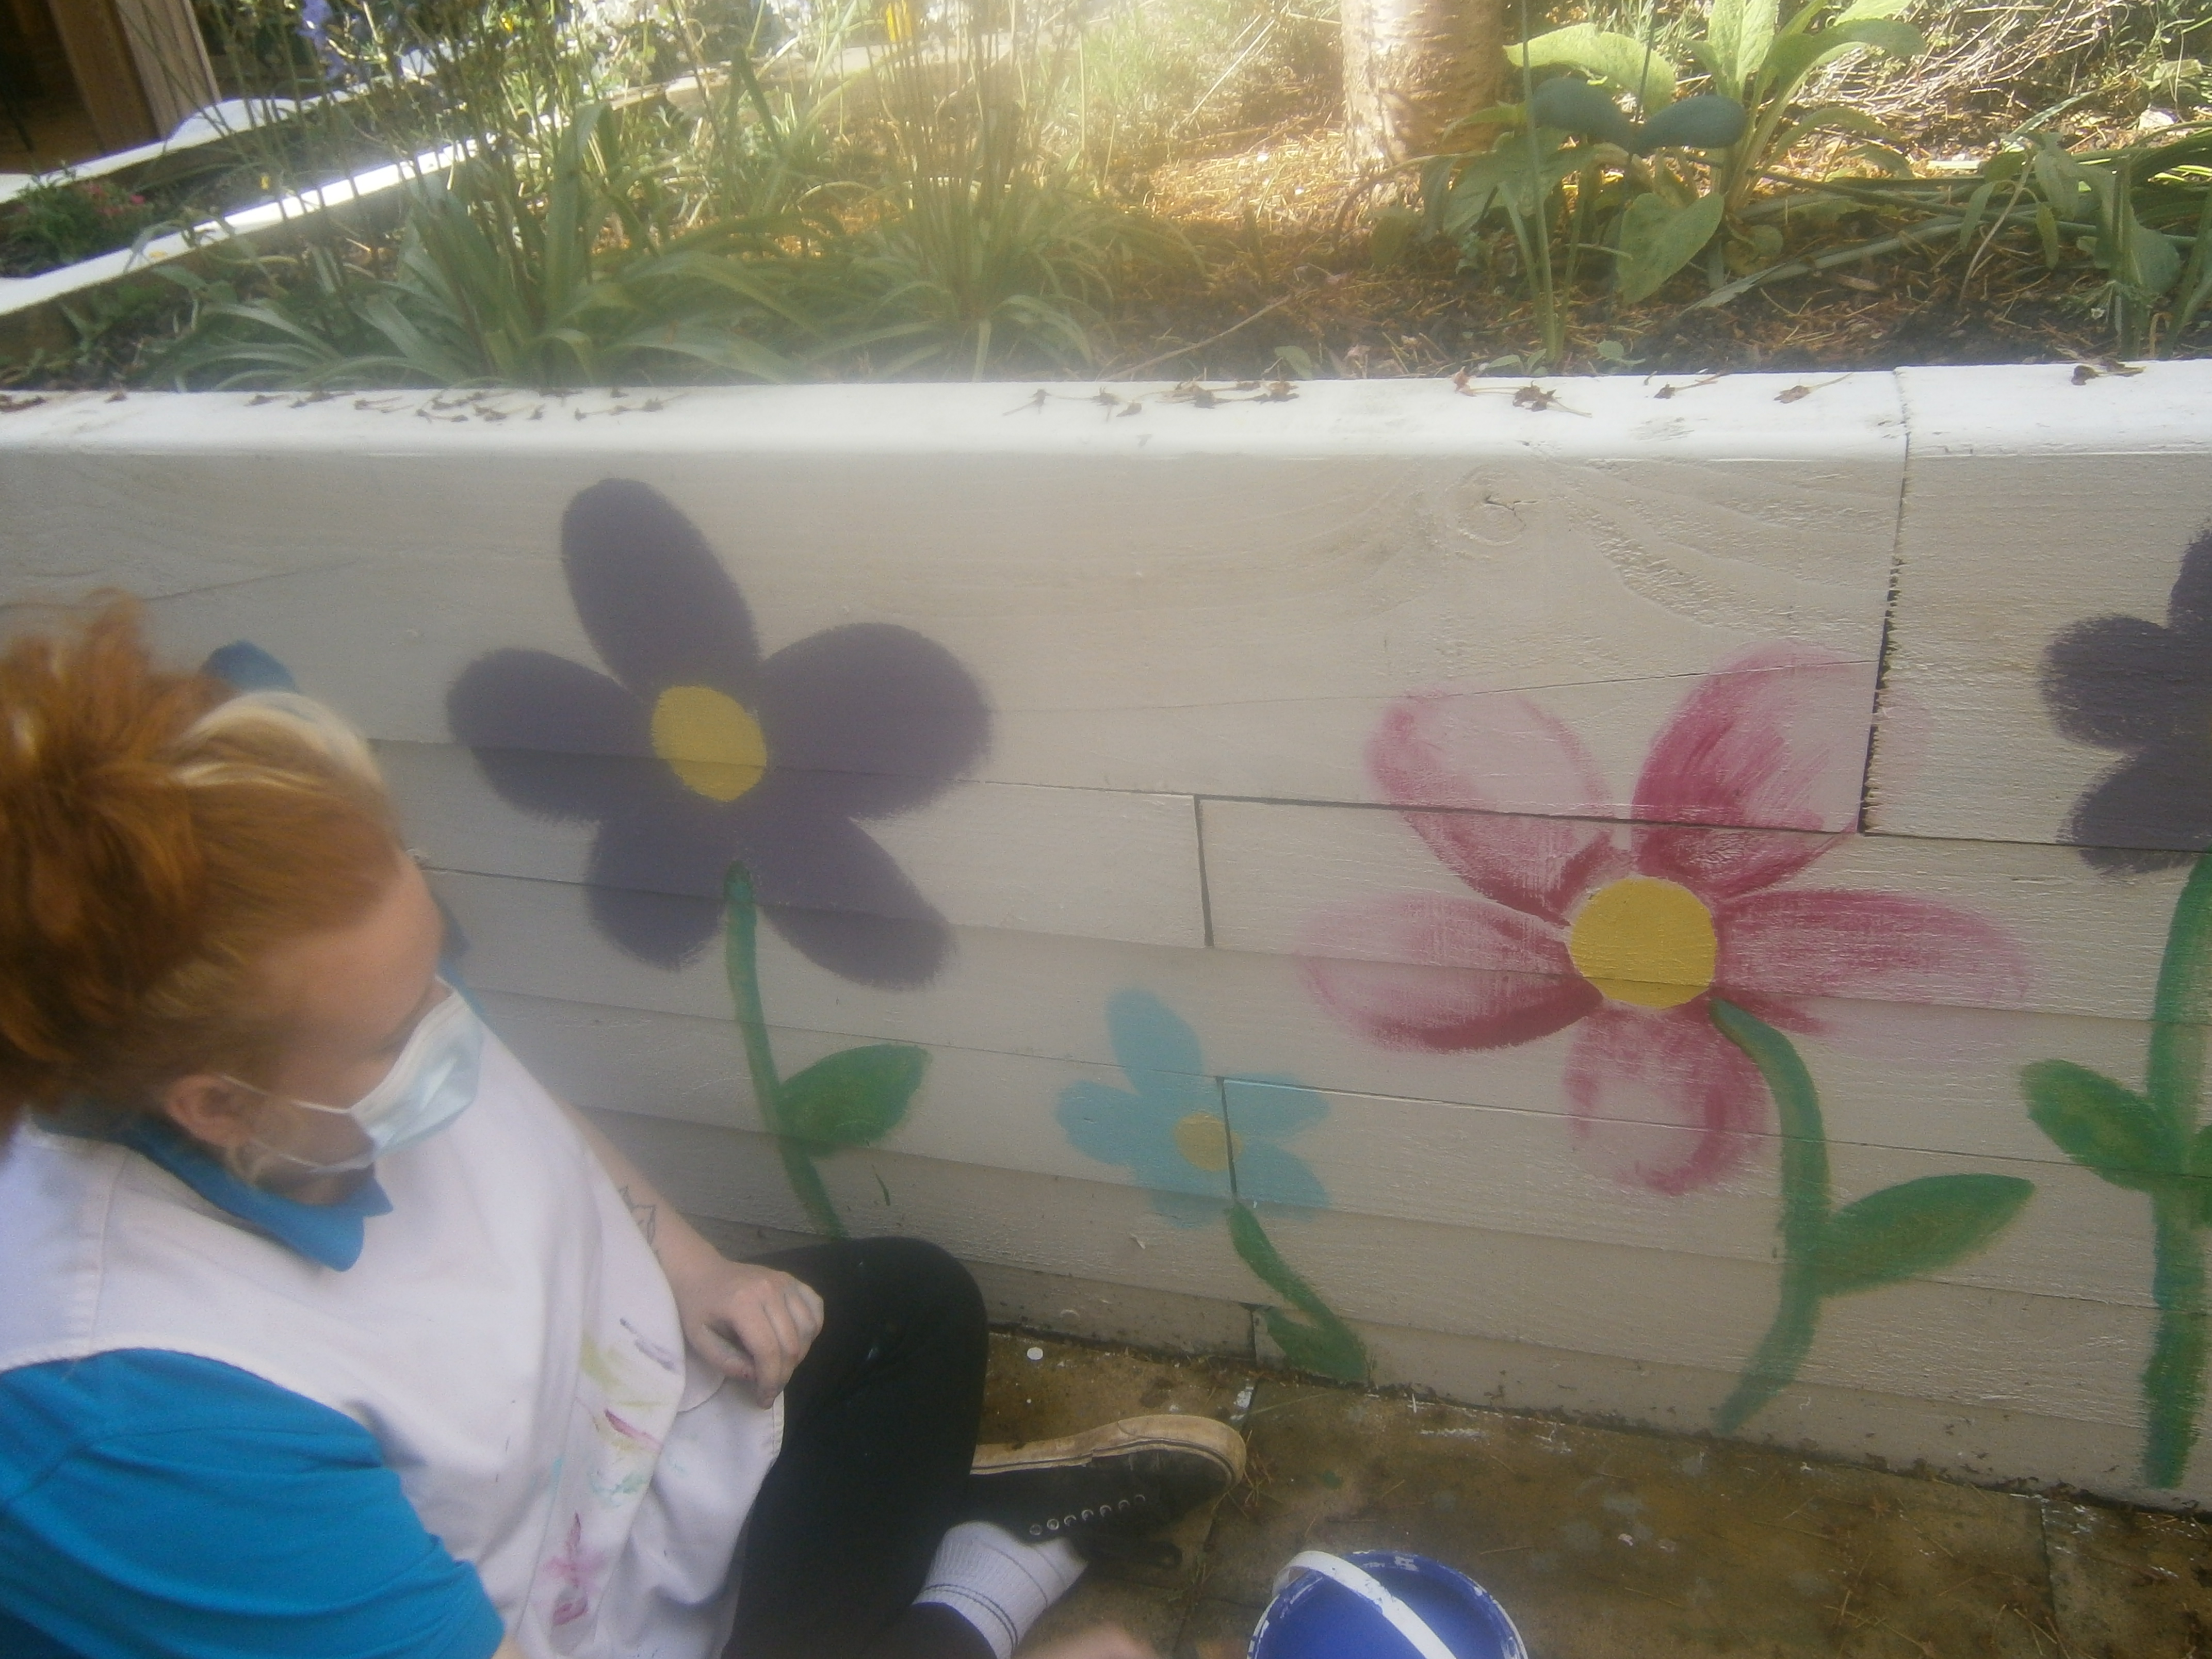 Leah painting flowers in the courtyard